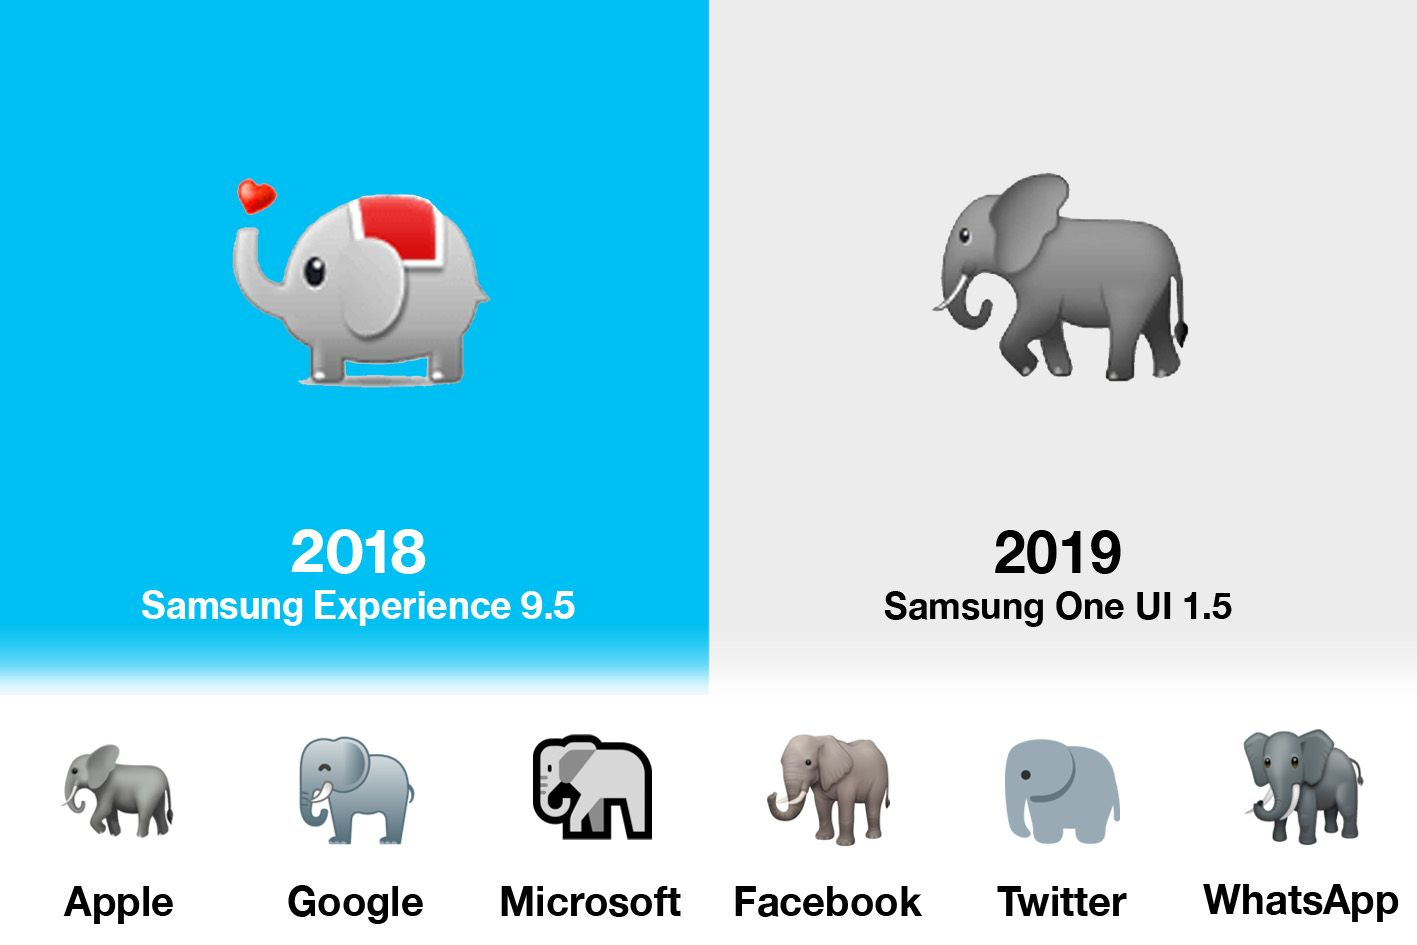 Emojipedia-End-Of-Year-Comparison-Image-Samsung-Elephant-Convergence-1